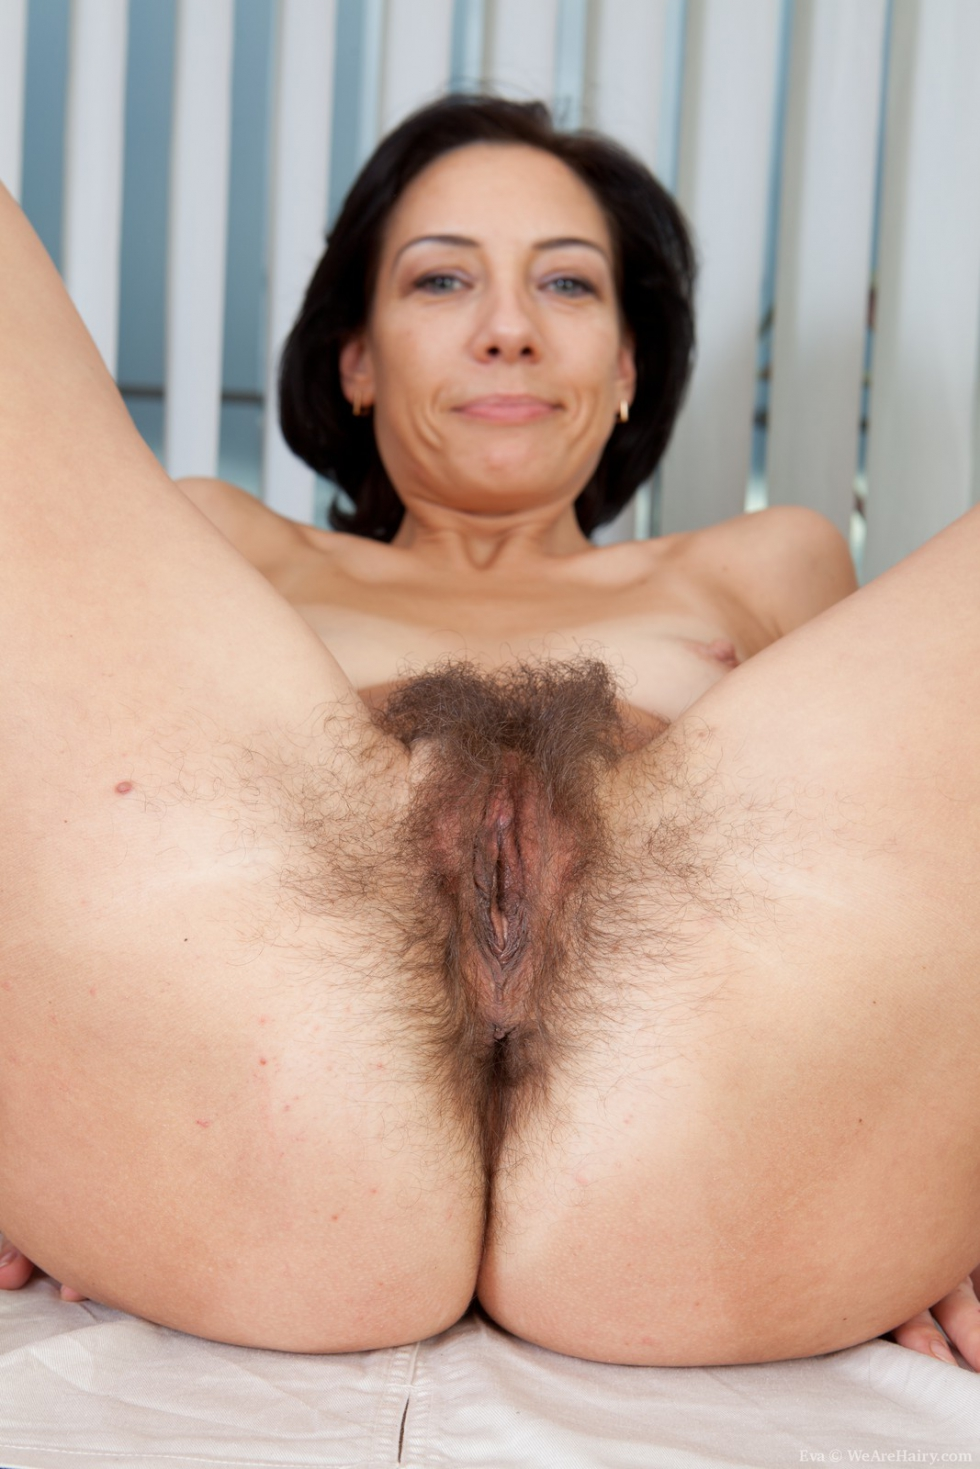 hd small tit